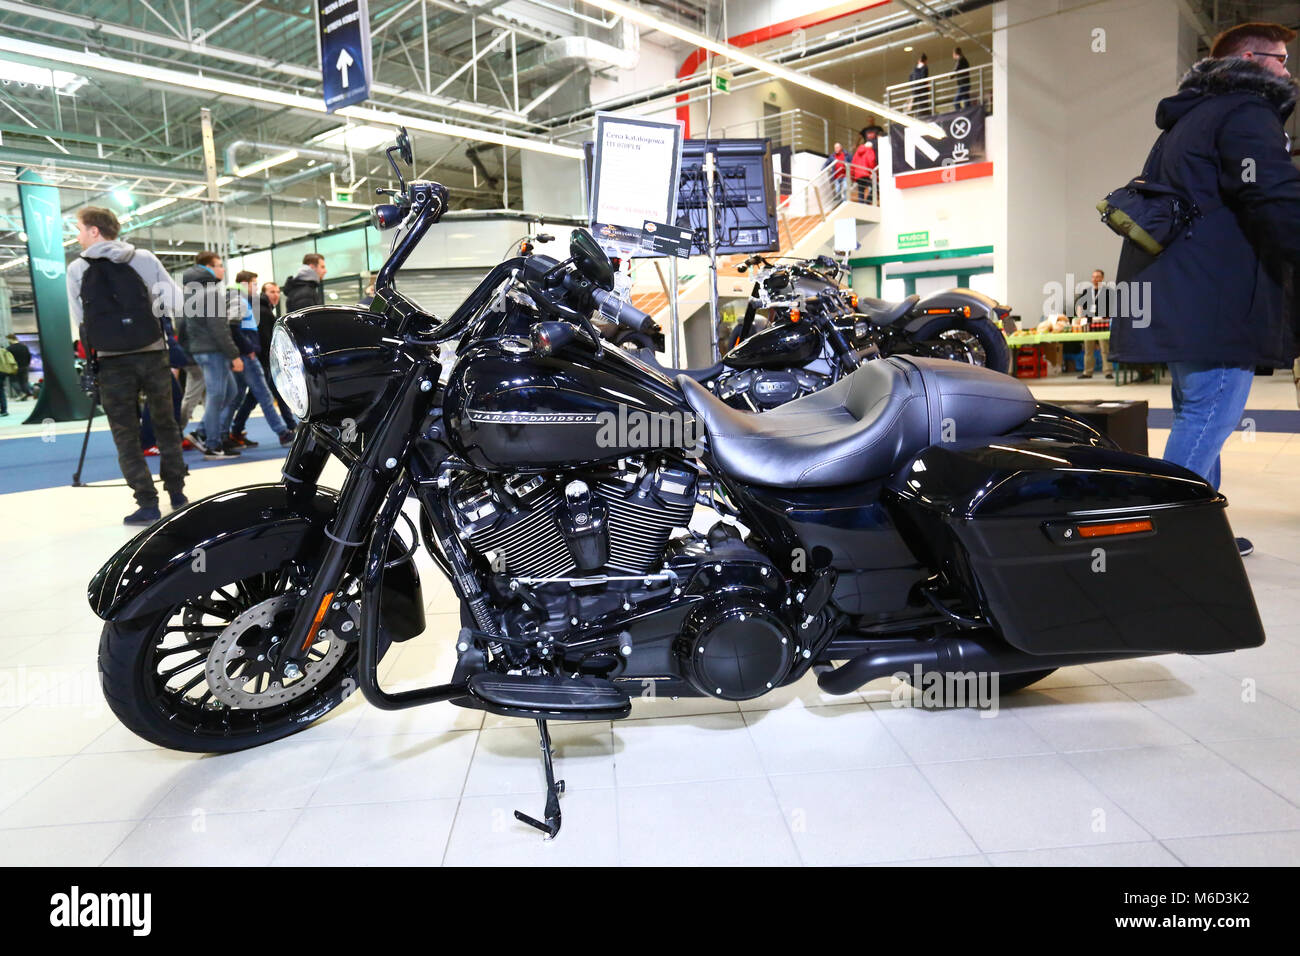 Nadarzyn, Poland. 02nd Mar, 2018. Poland, Nadarzyn, 2nd March 2018: PTAK expo center opens Motorcycle Show. Credit: - Stock Image